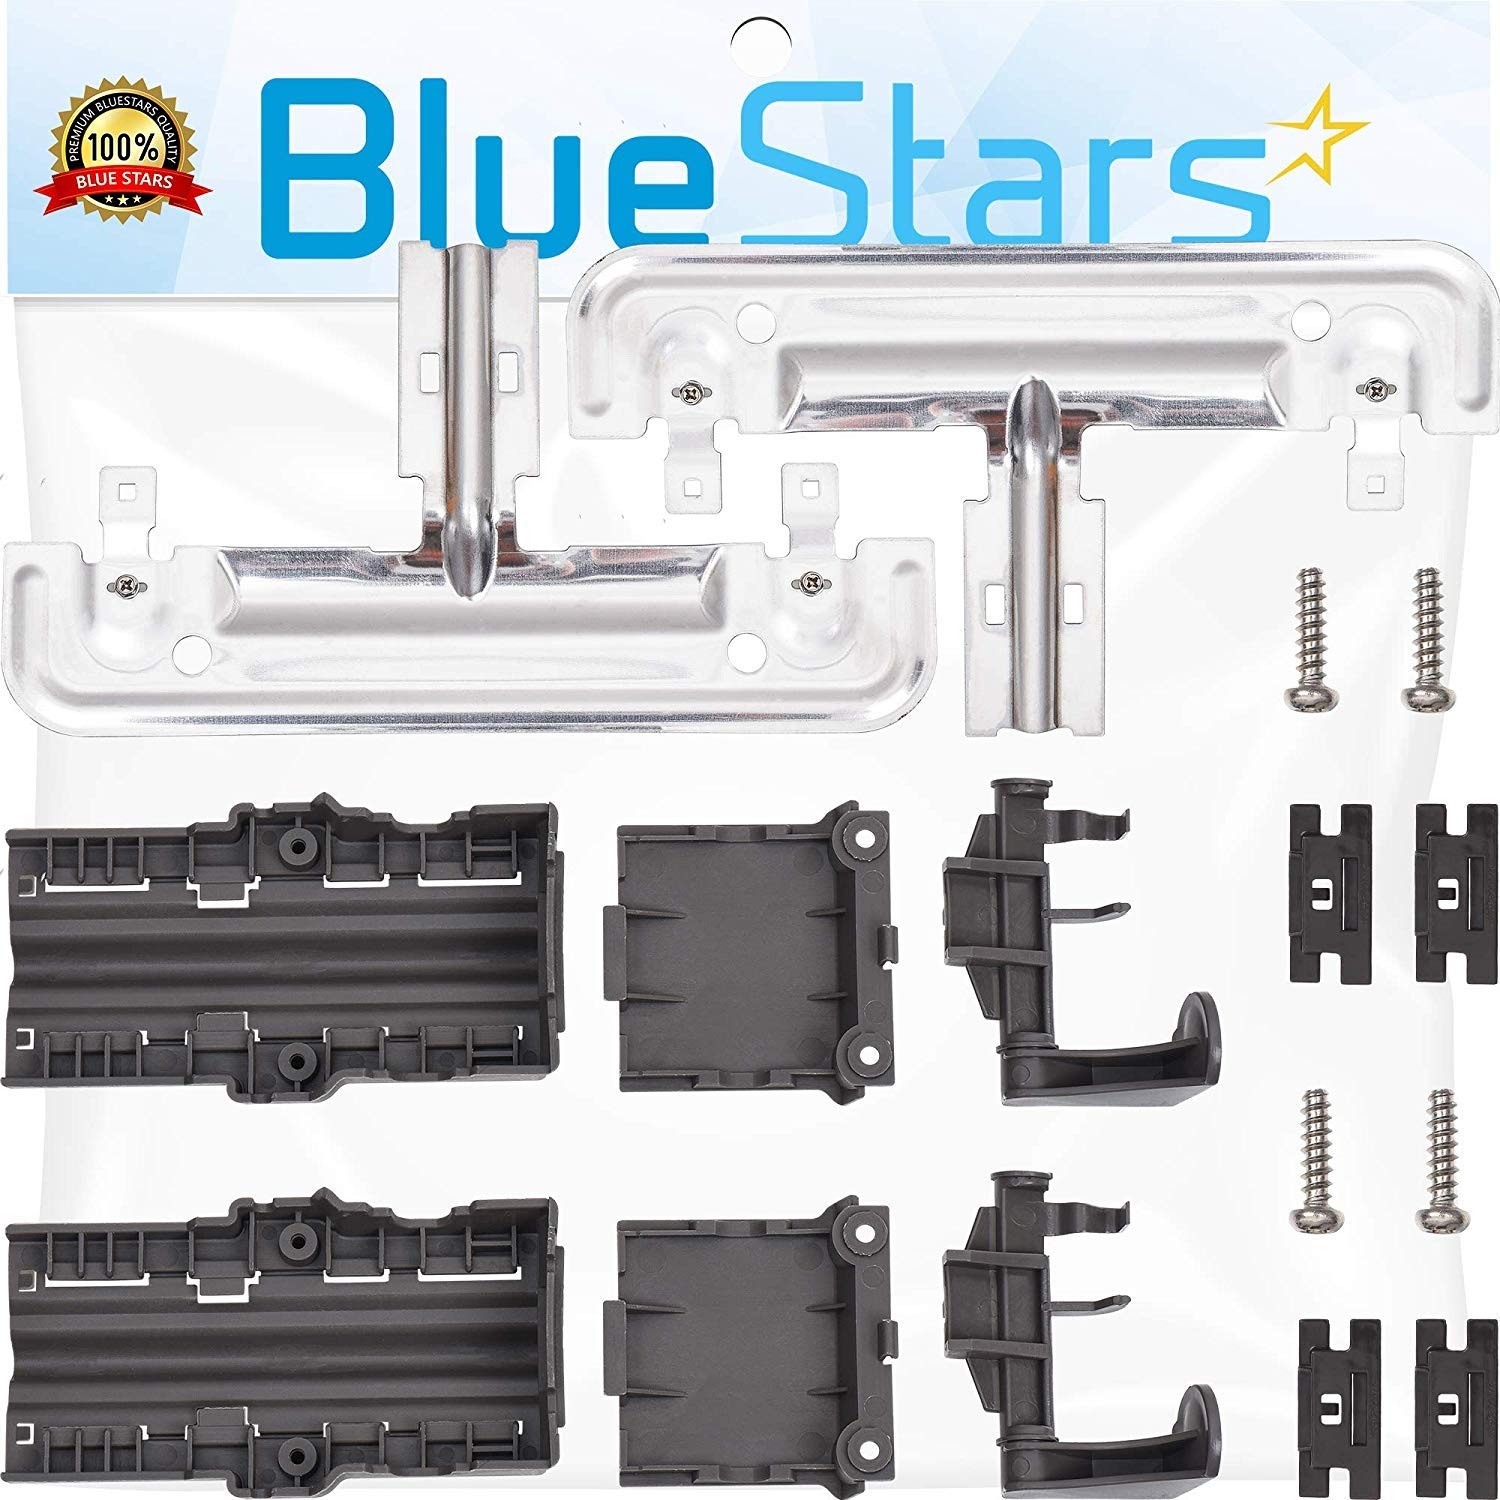 Ultra Durable W10712395 Dishwasher Rack Adjuster Kit Replacement Part by Blue Stars - Exact Fit For Whirlpool & Kenmore Dishwashers - Replaces W10250159 W10350375